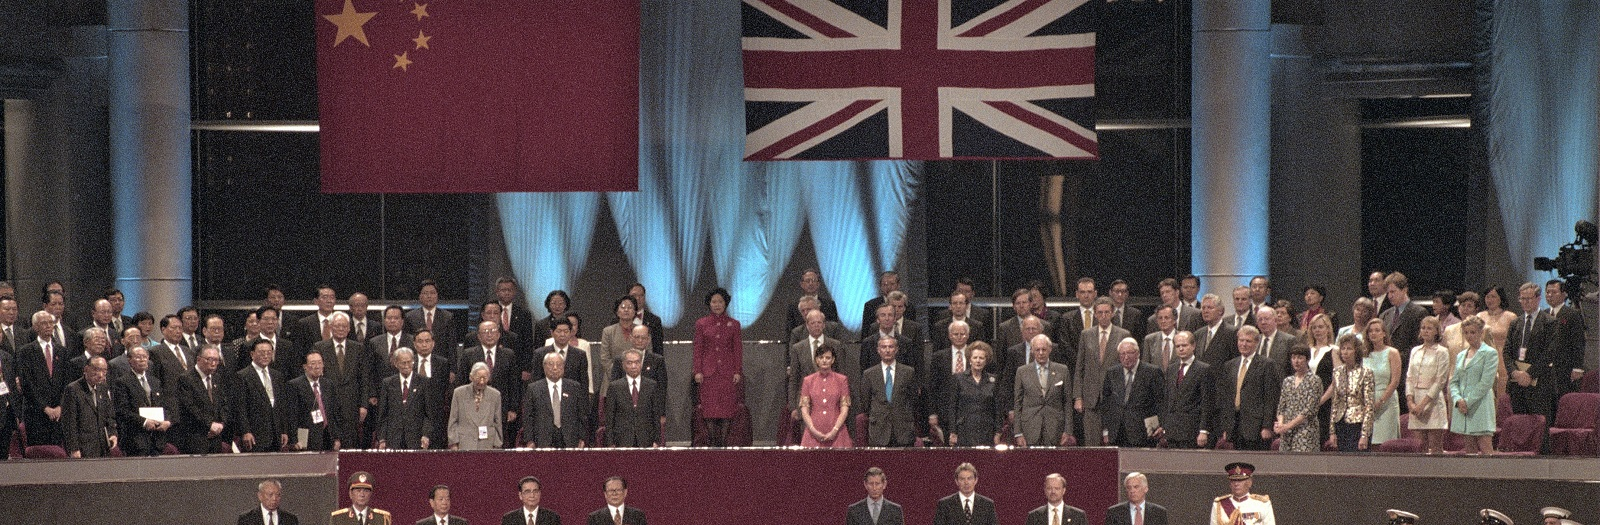 The 1997 Hong Kong Handover Ceremony (Photo: Peter Turnley/Getty Images)